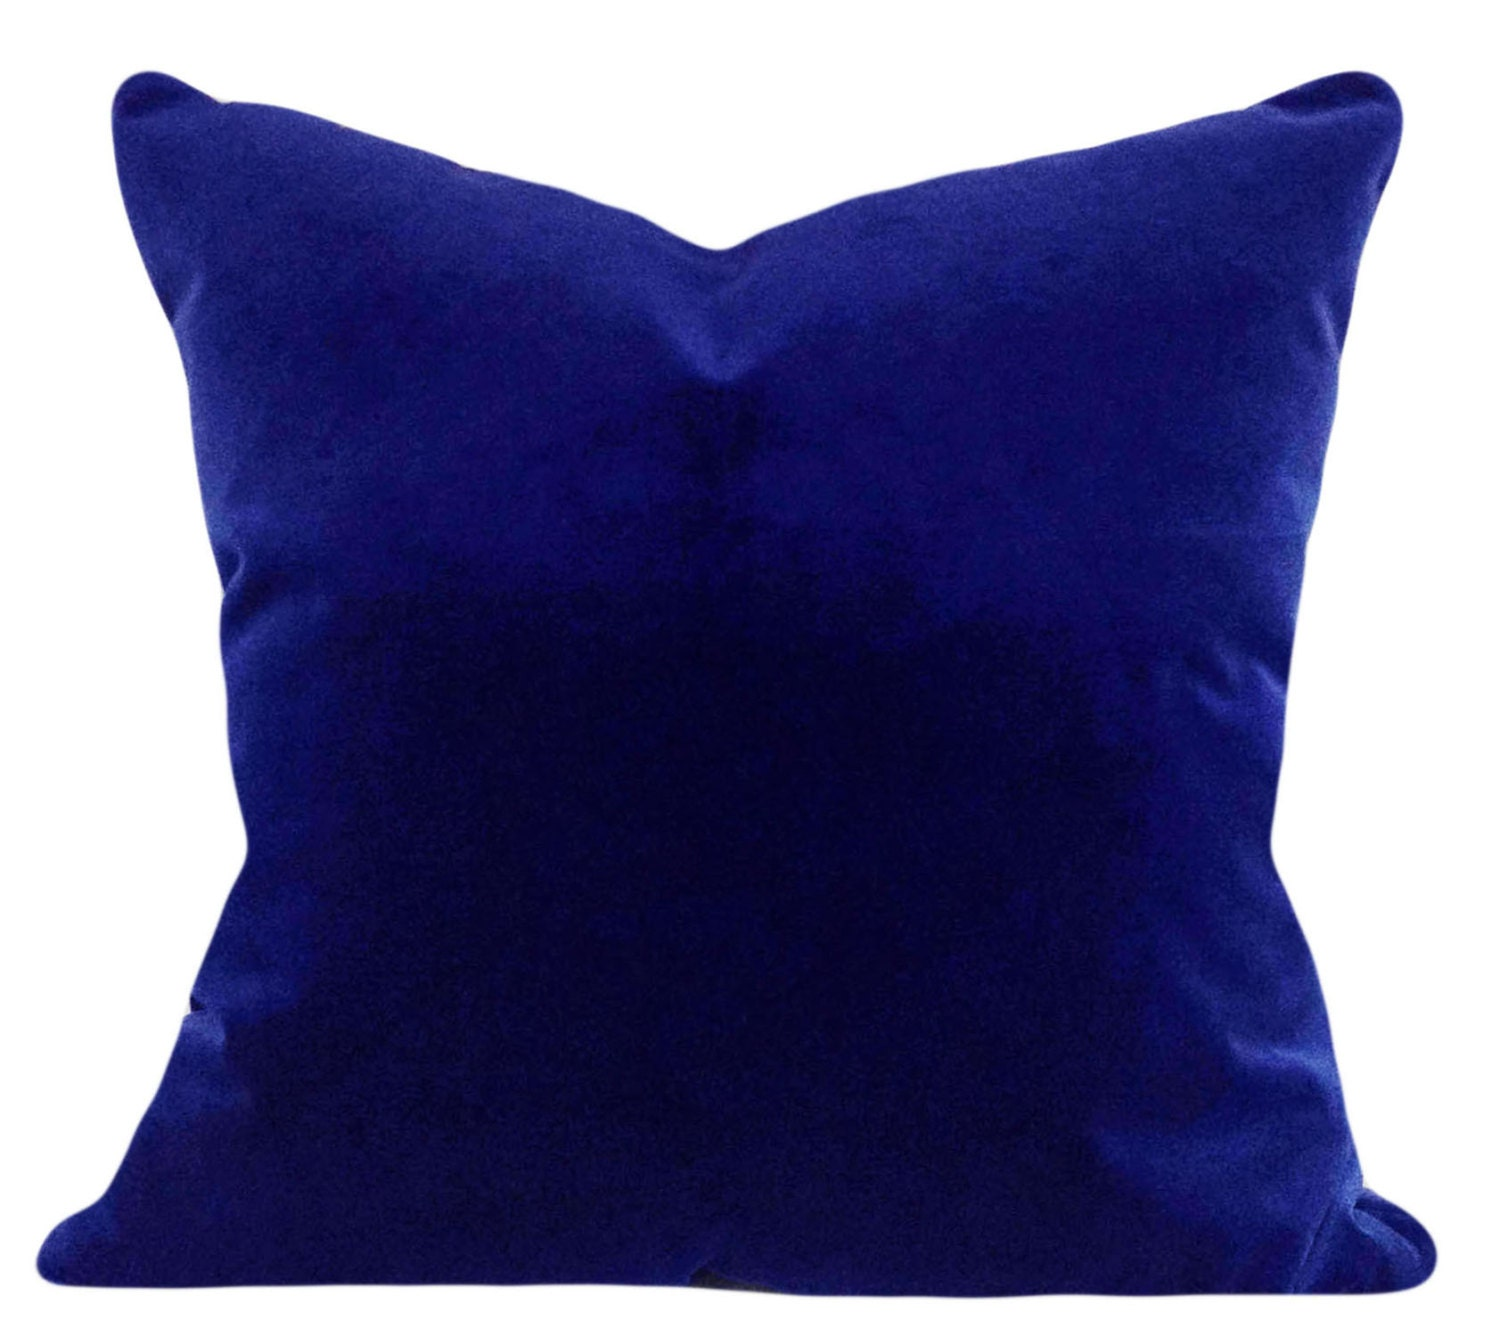 Throw Pillows Royal Blue : Royal Blue Velvet Decorative Pillow Cover by PillowTimeGirls